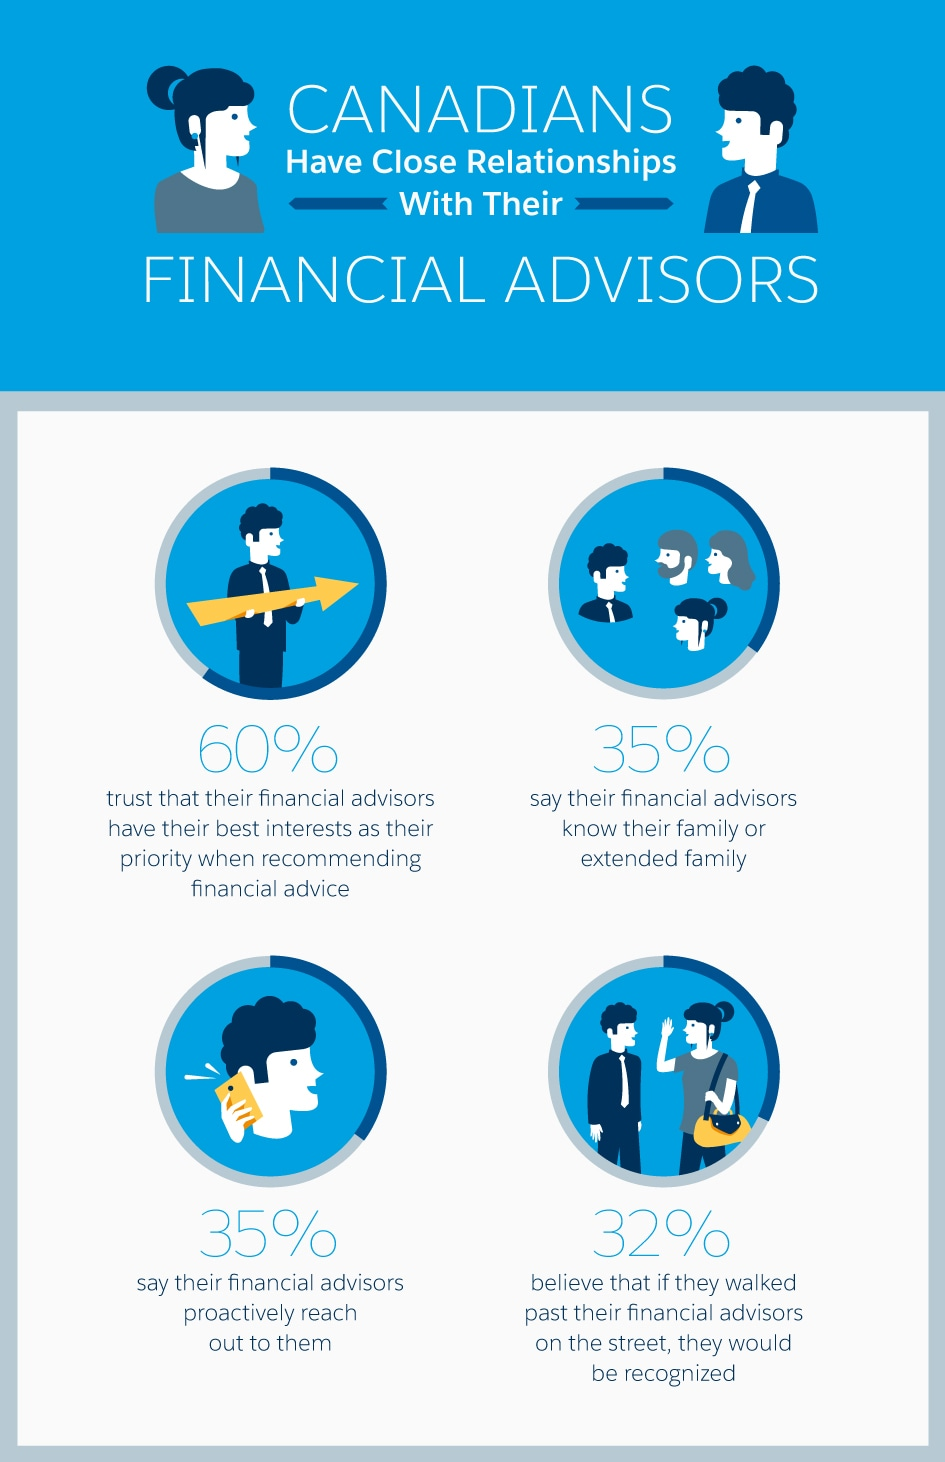 canadians have close relationships with their financial advisors